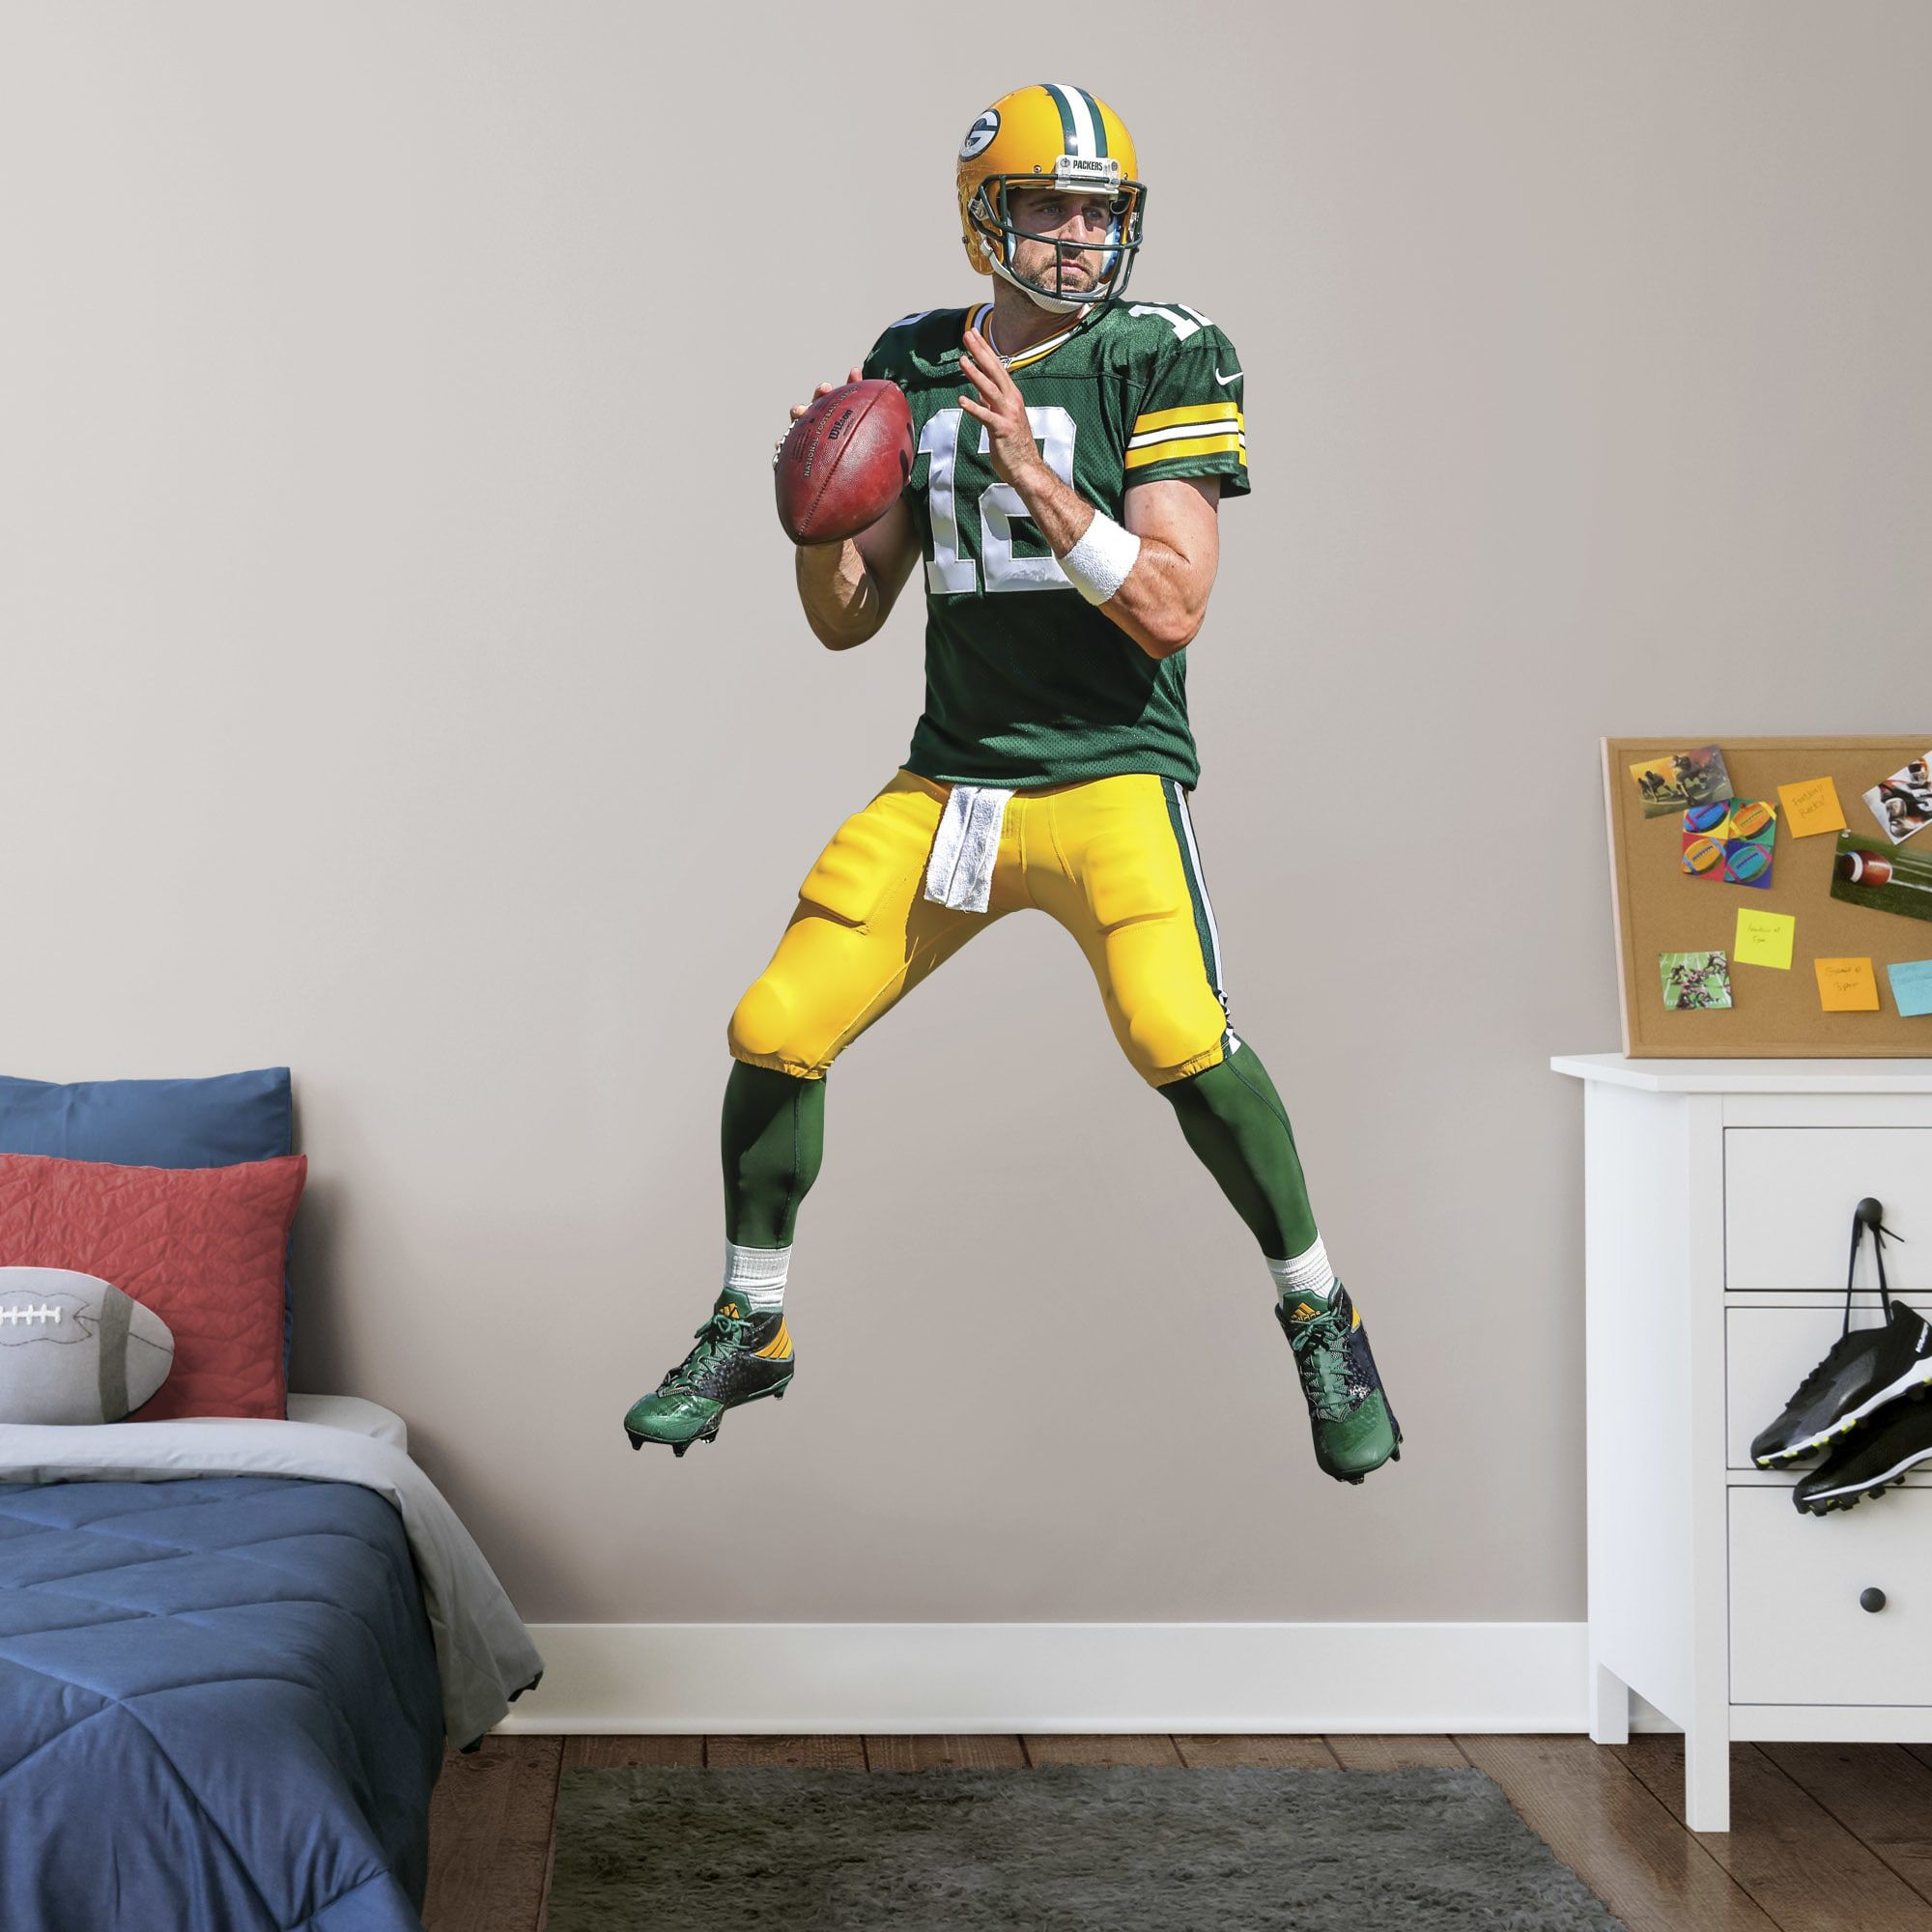 01a6a58590c Put your passion on display with a giant Aaron Rodgers - Life-Size Officially  Licensed NFL Removable Wall Decal Fathead wall decal!